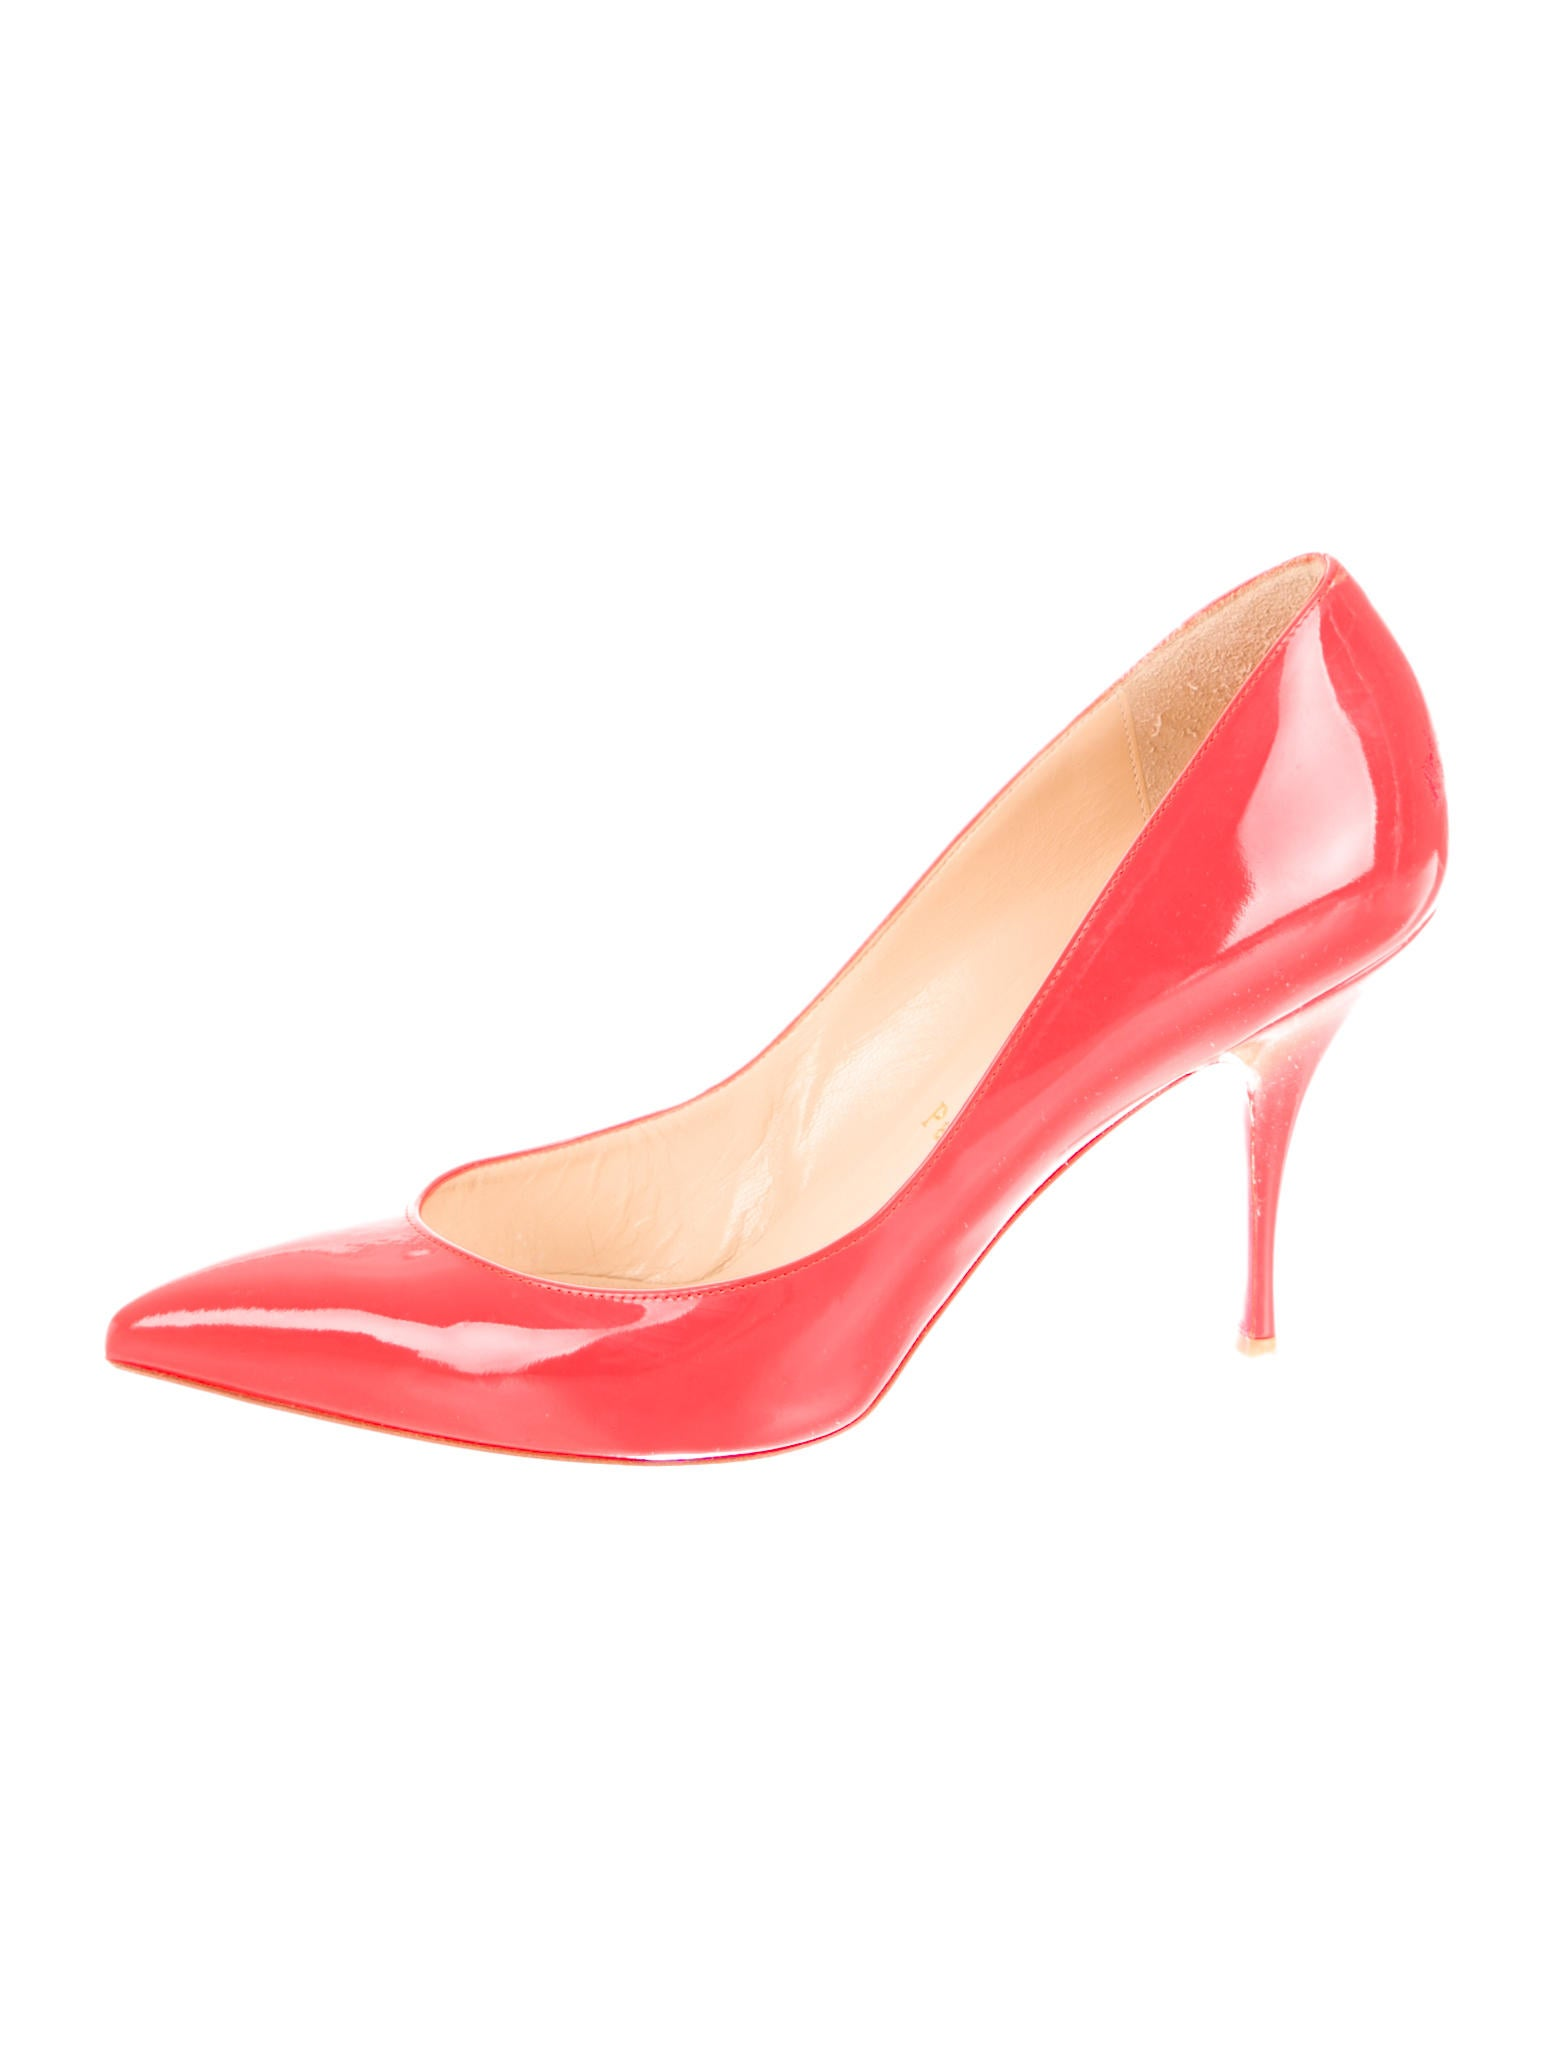 red bottom dress shoes for men - christian louboutin Piou Piou pointed-toe pumps Black patent ...